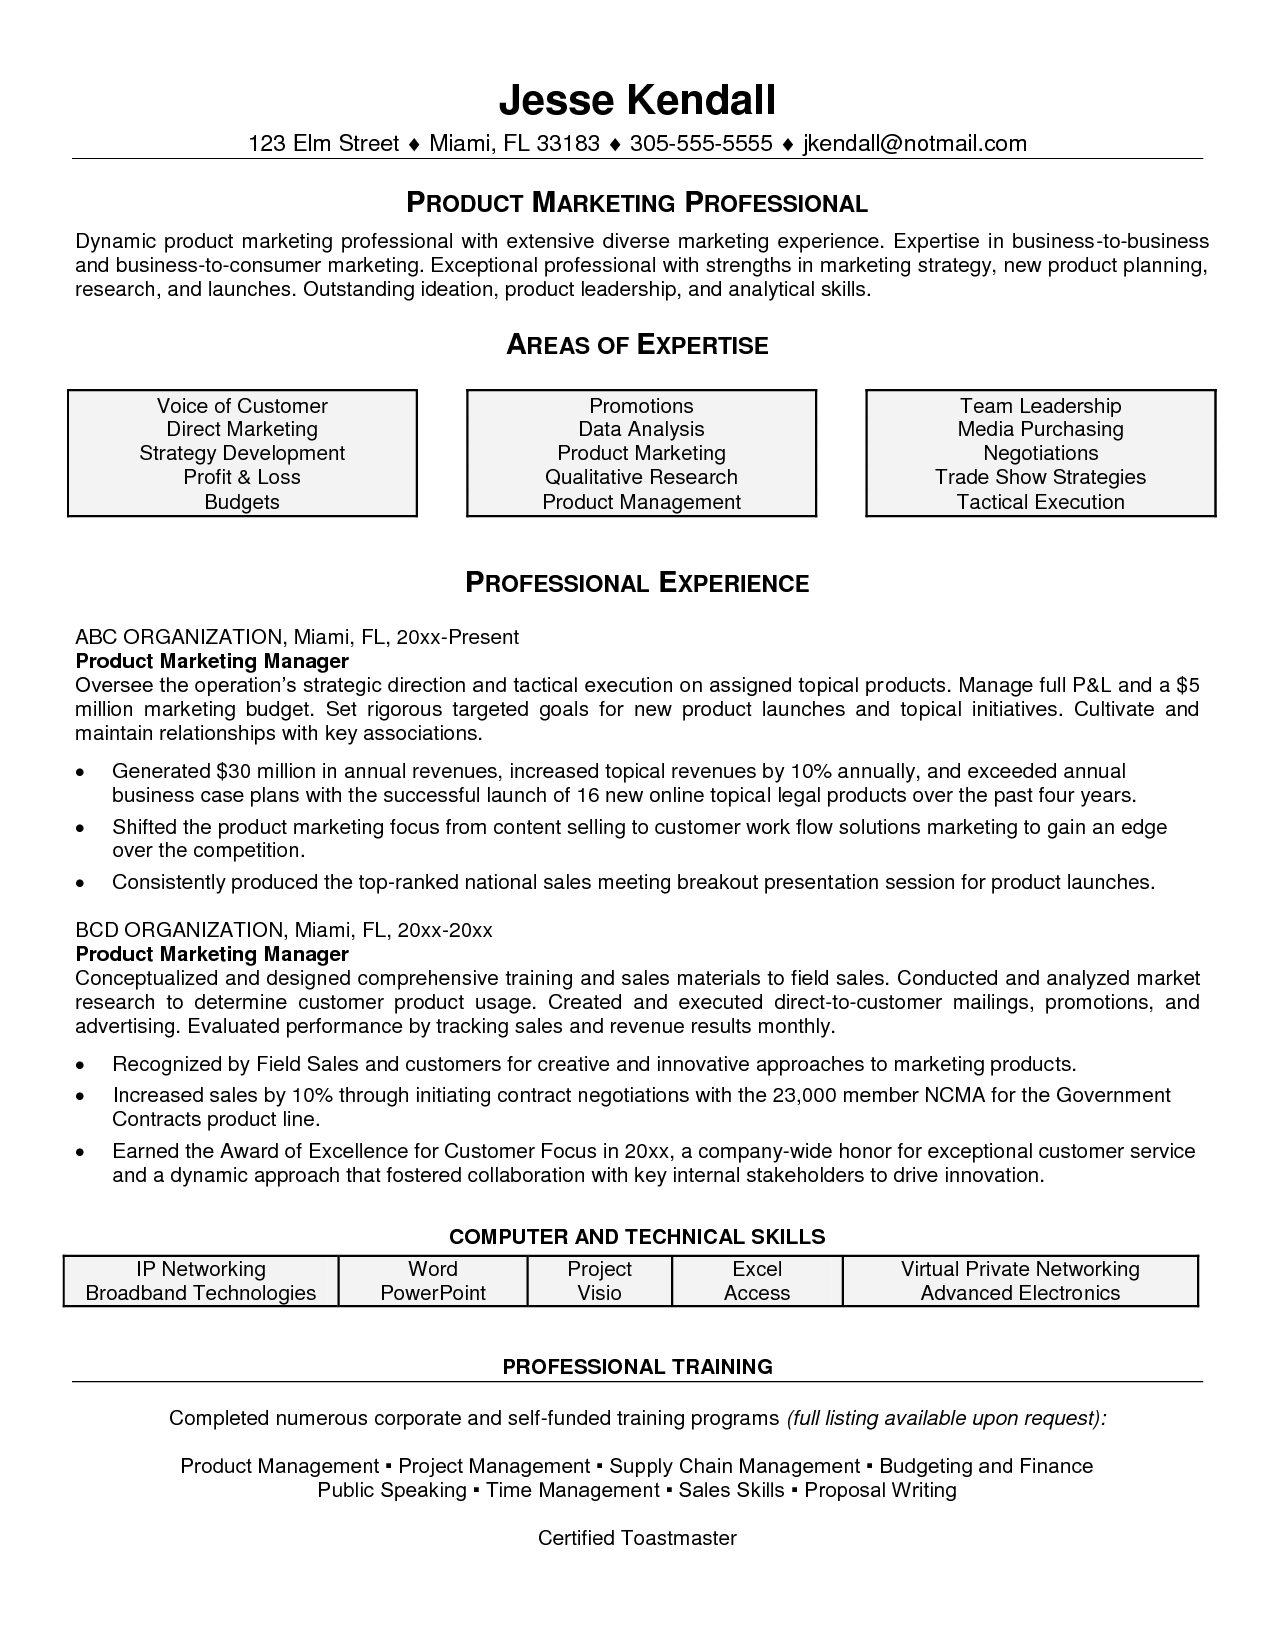 this resume example for a marketing project manager is used to picture